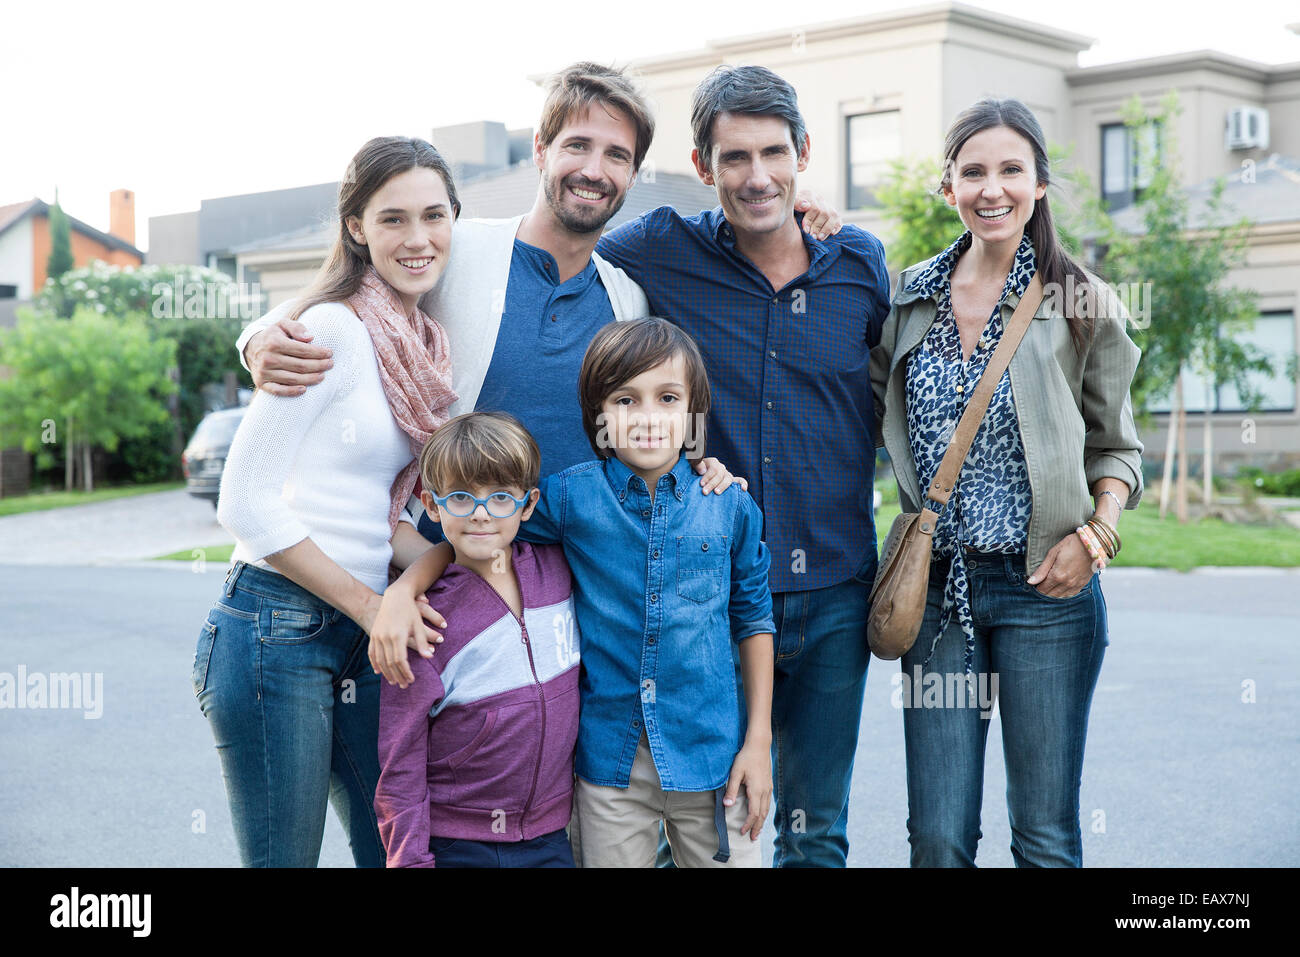 Family posing together on suburban street, portrait Stock Photo